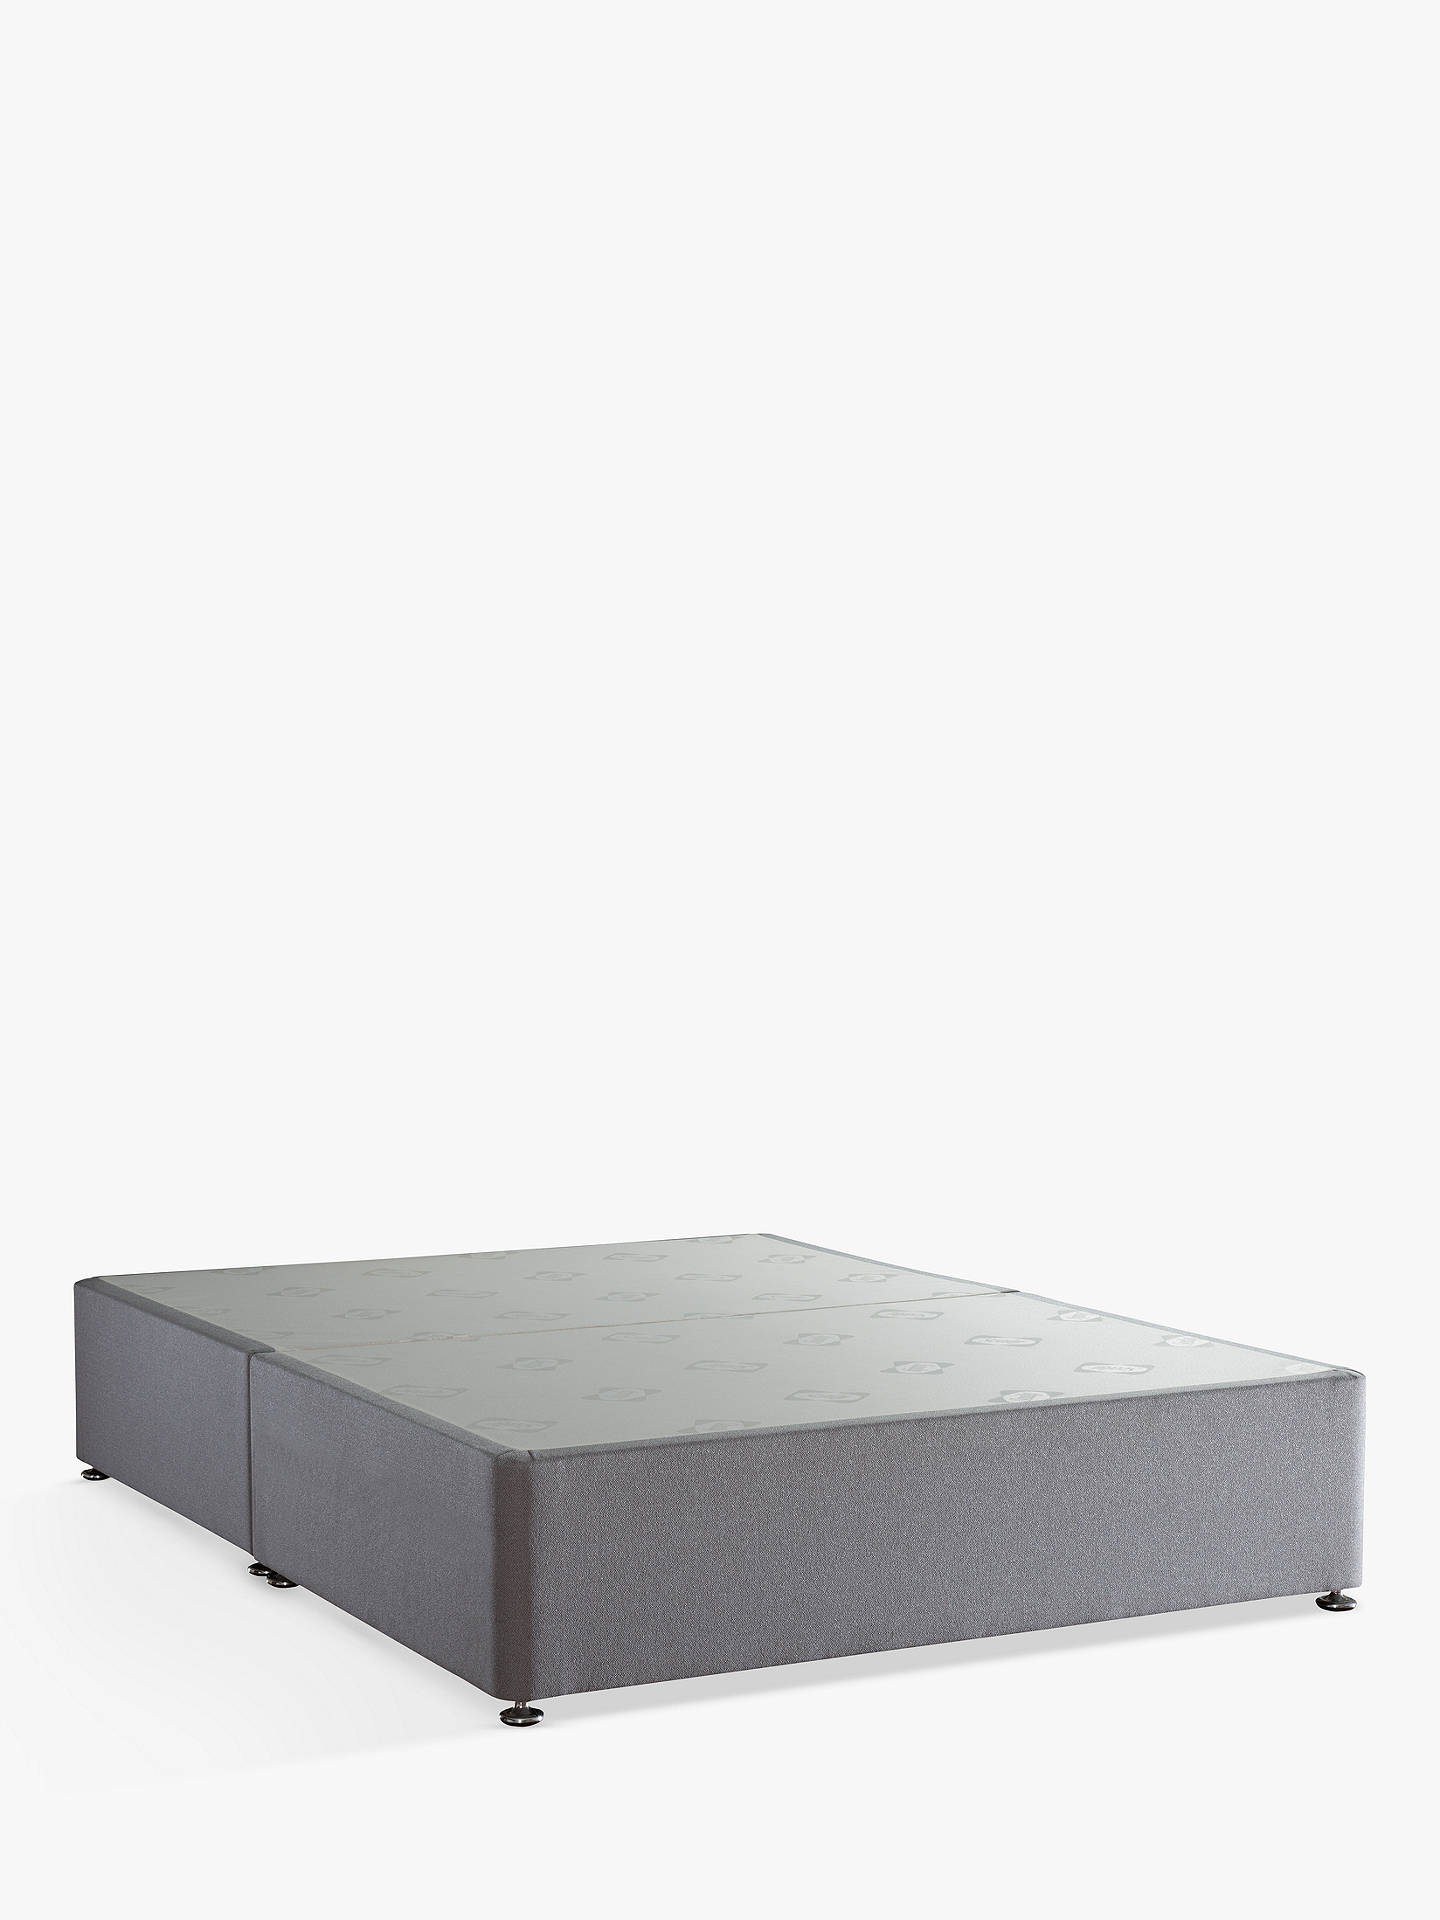 Buy Sealy Posturepedic Divan Base, Super King Size, Pewter Online at johnlewis.com